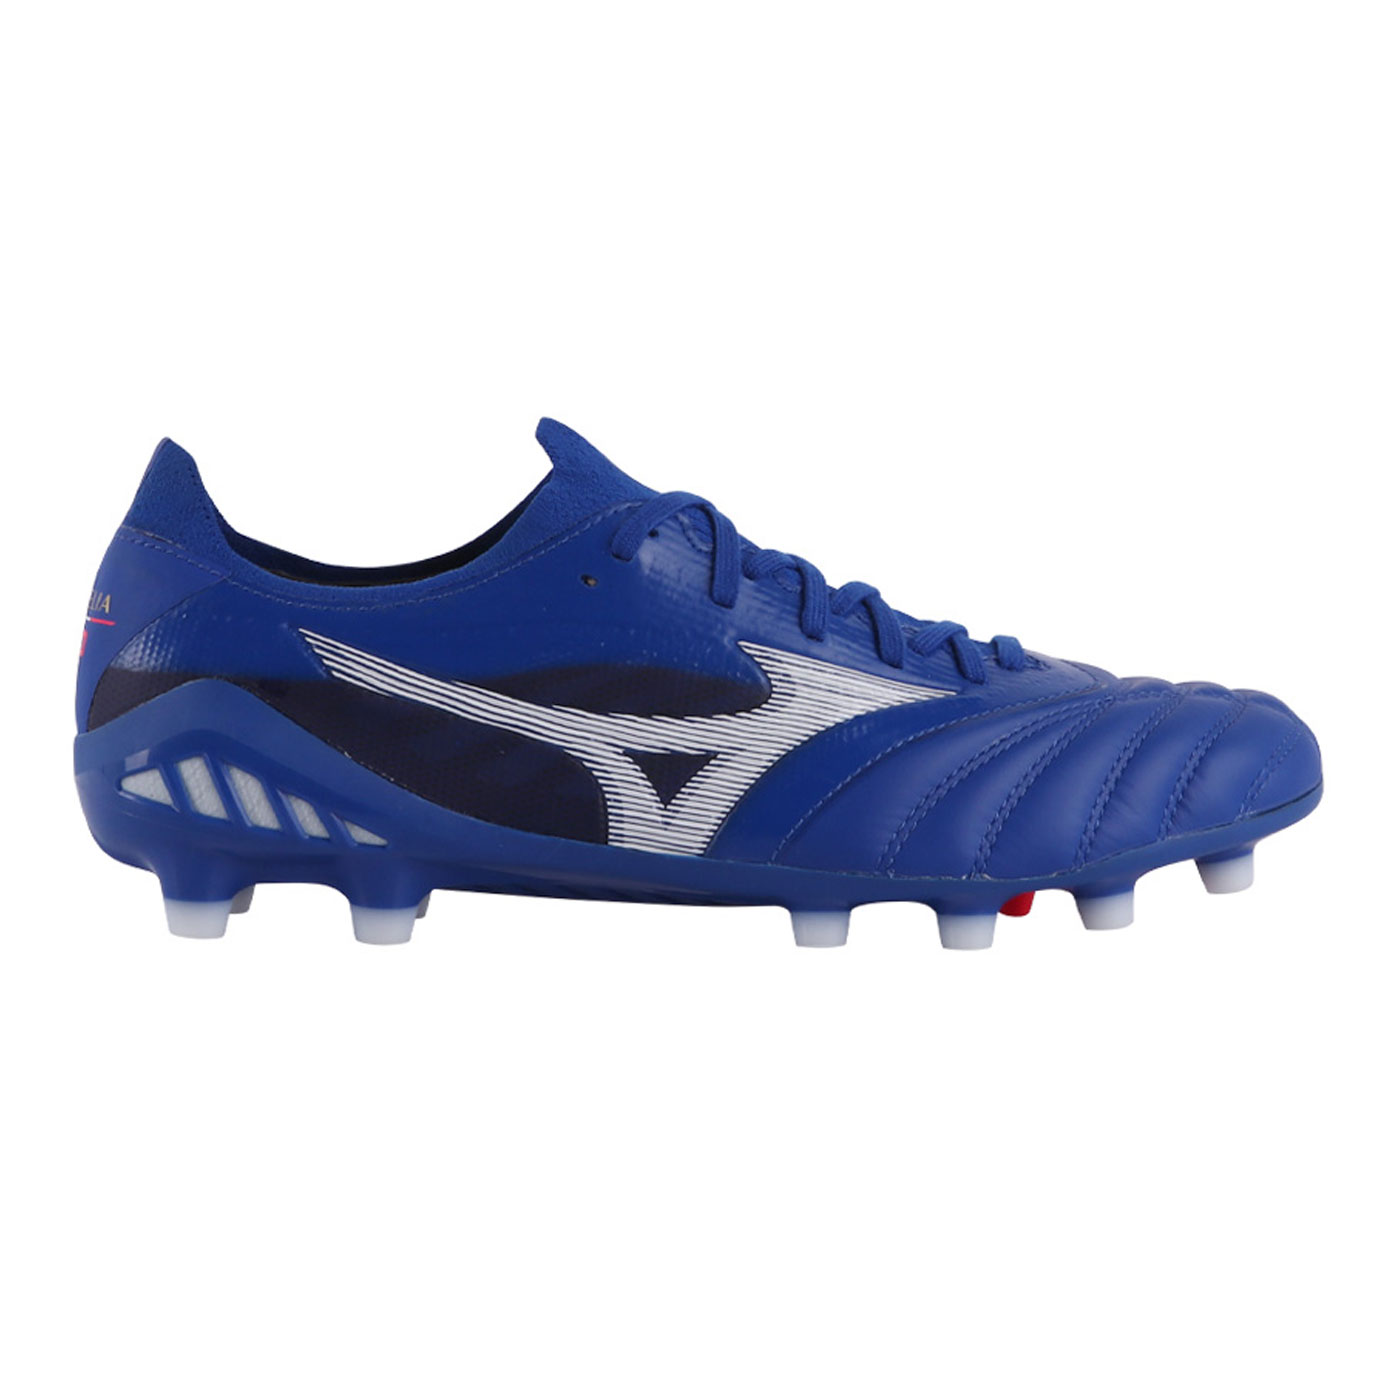 MORELIA NEO III BETA ELITE-REFLEX BLUE C/WHITE